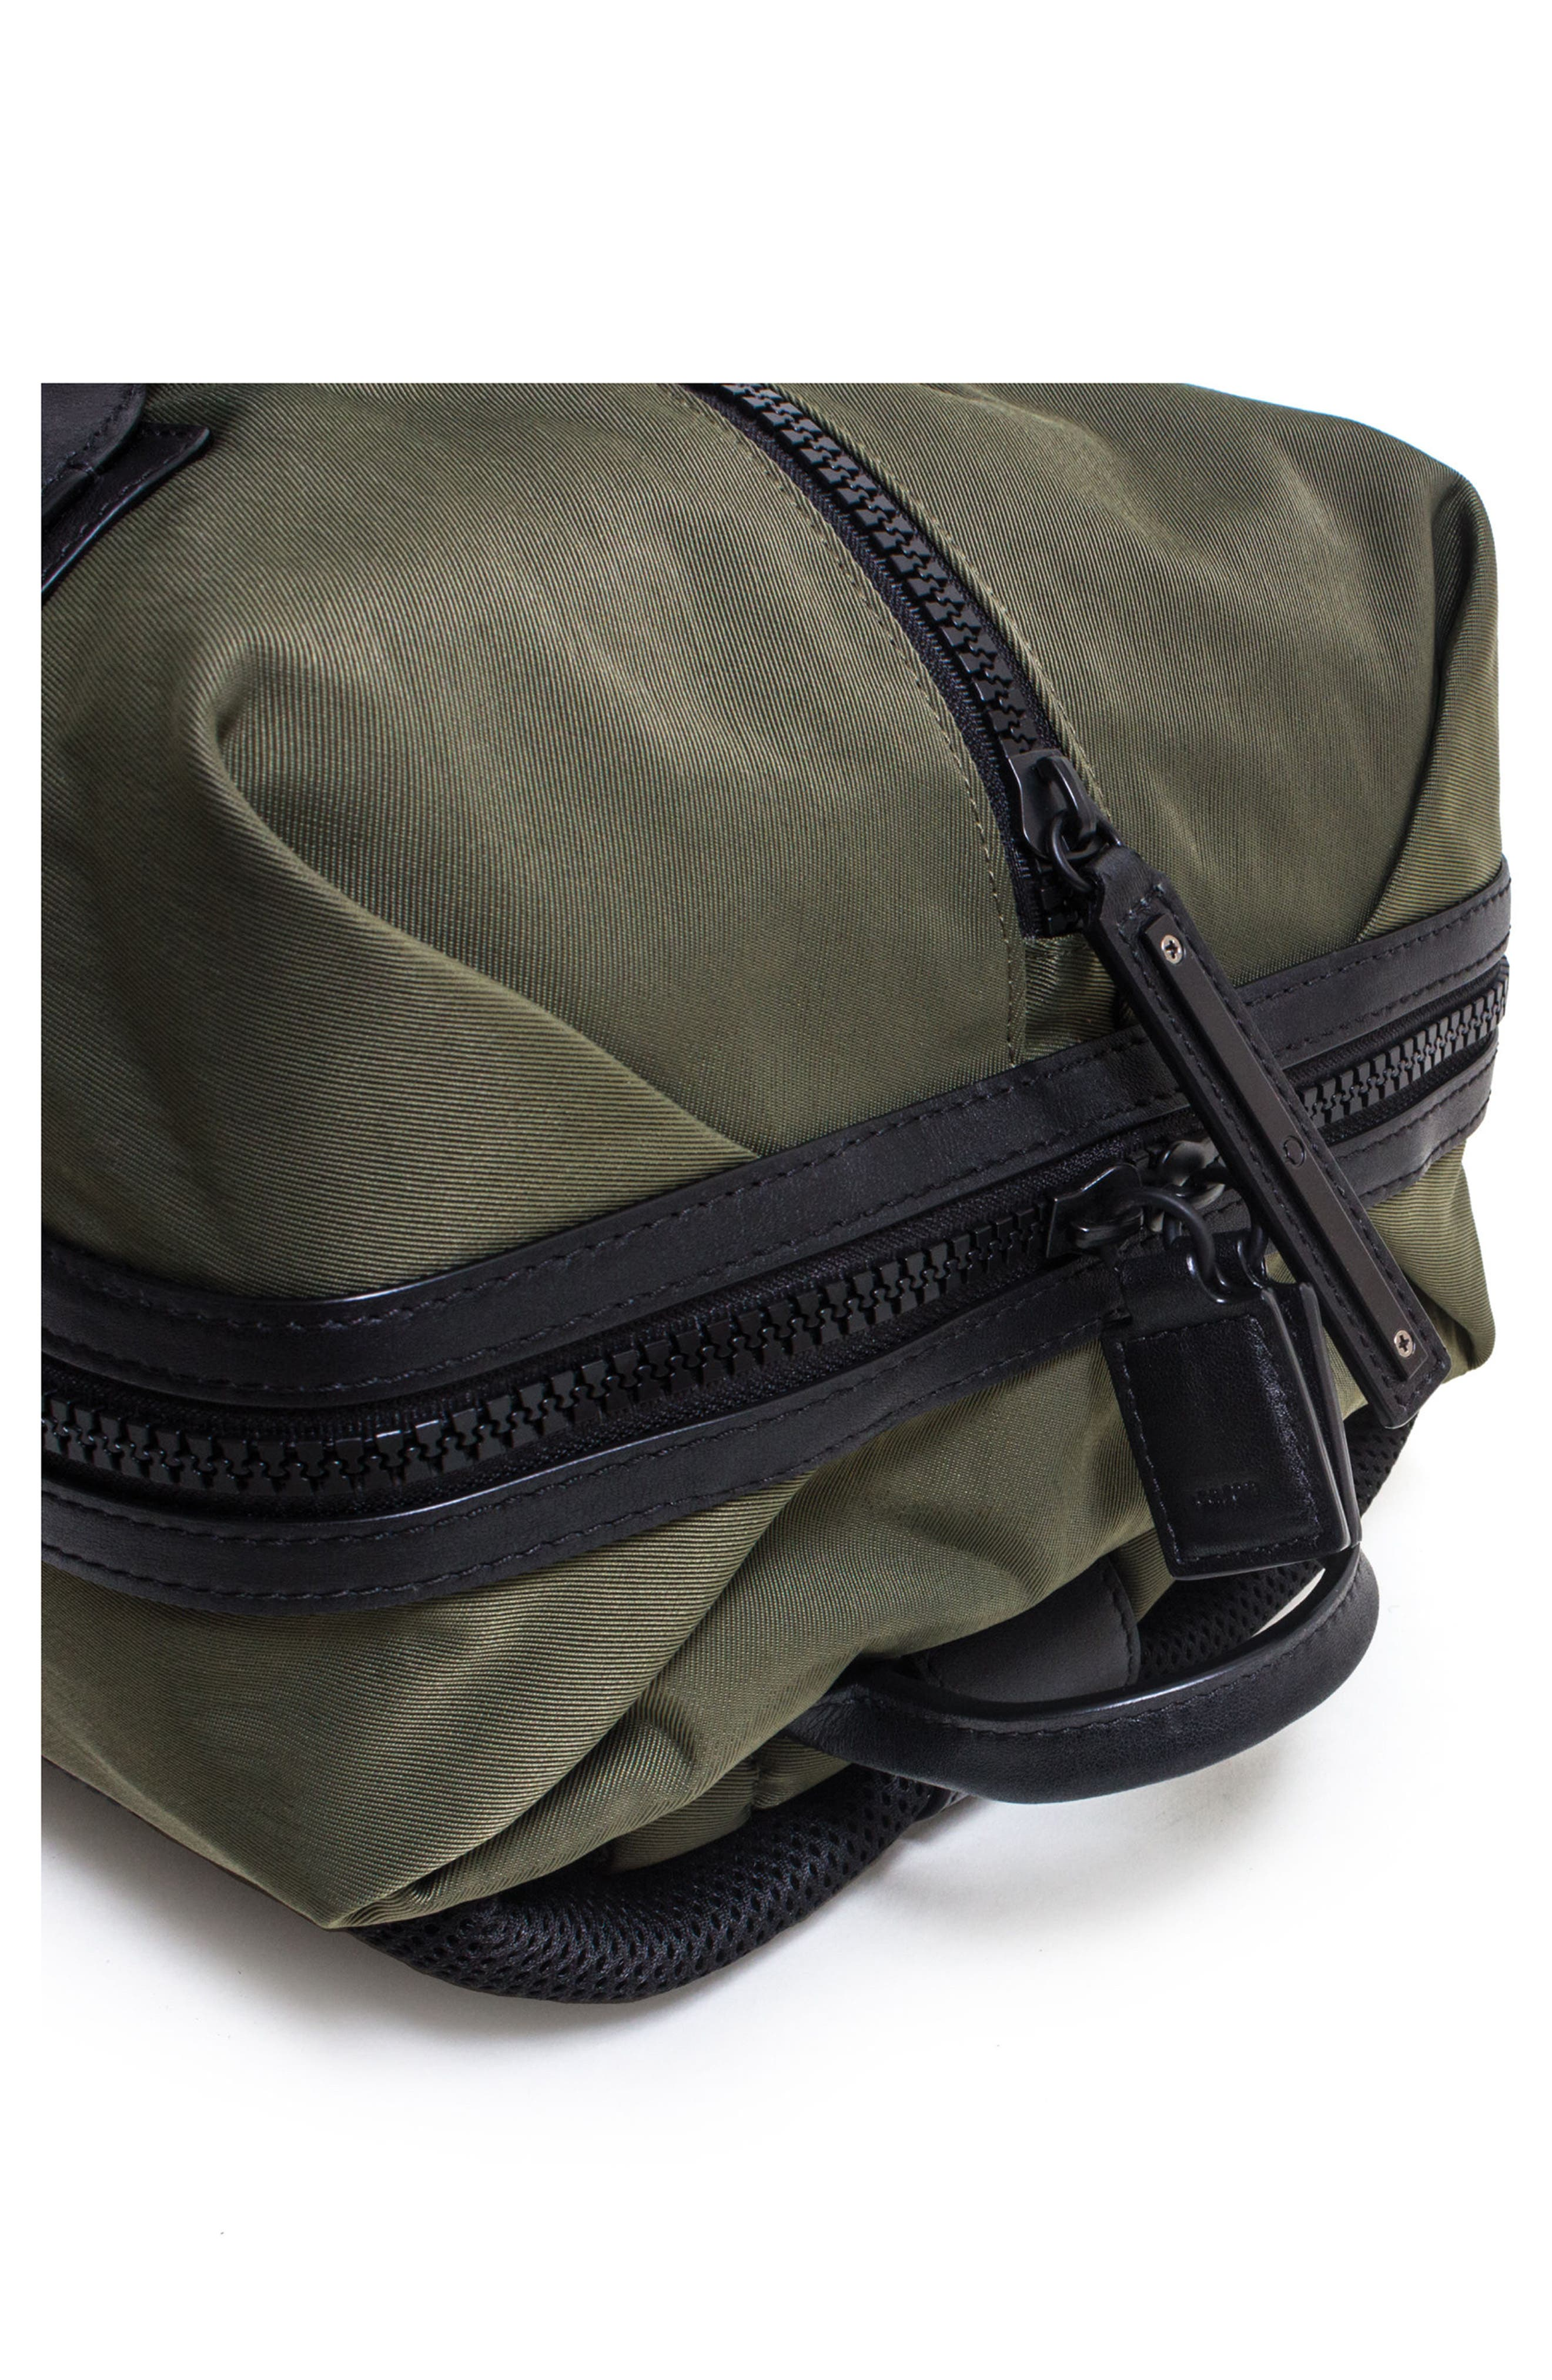 Studio 1.1 Convertible Duffel Bag,                             Alternate thumbnail 5, color,                             300